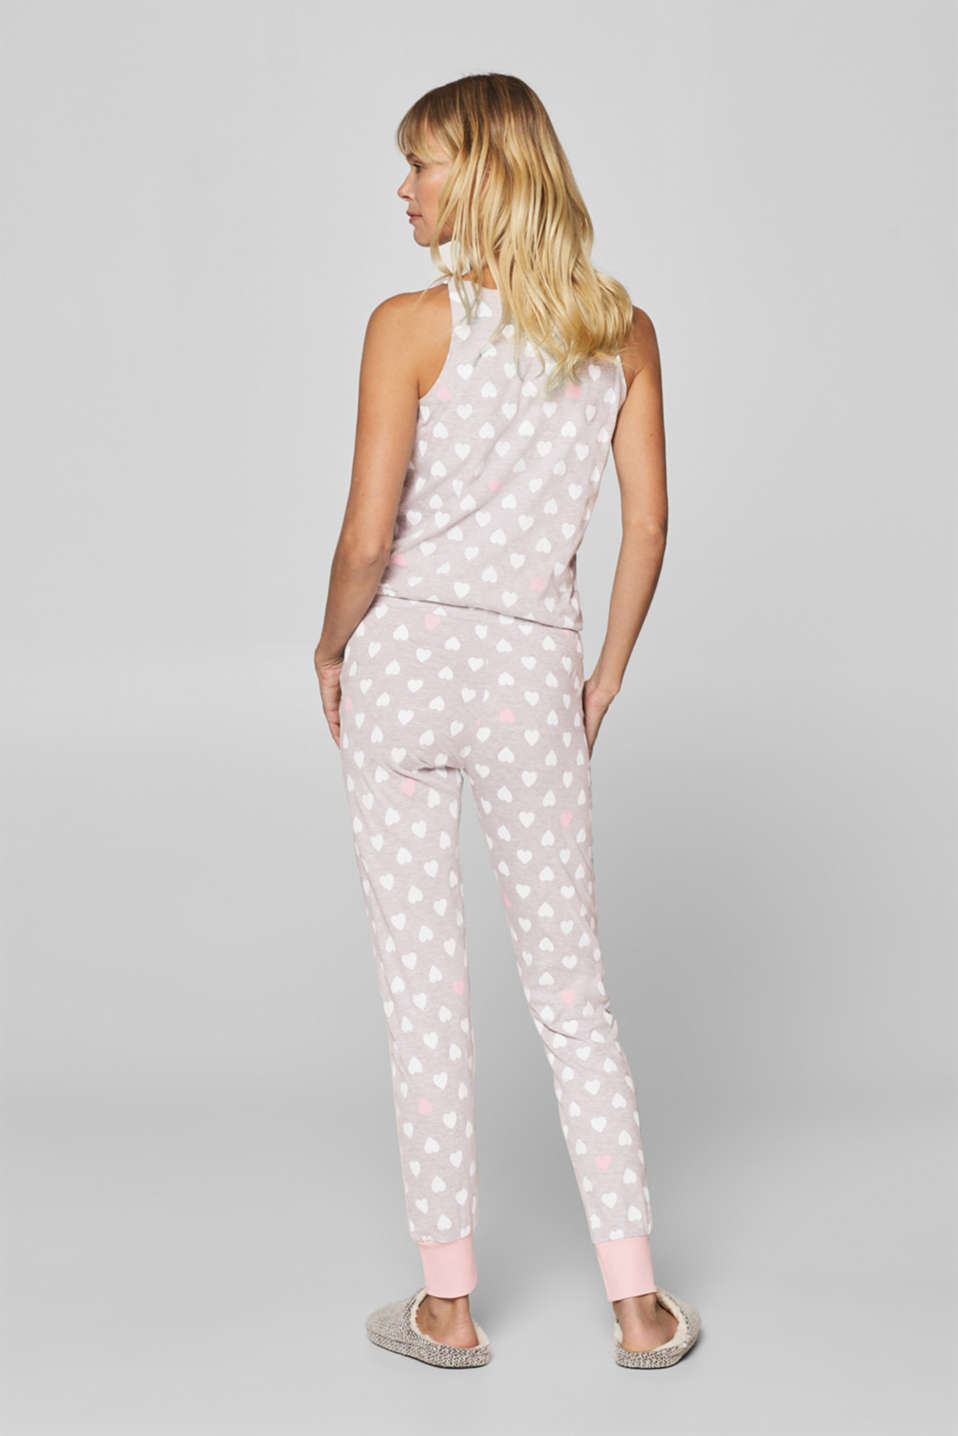 Mottled jersey jumpsuit with a heart print